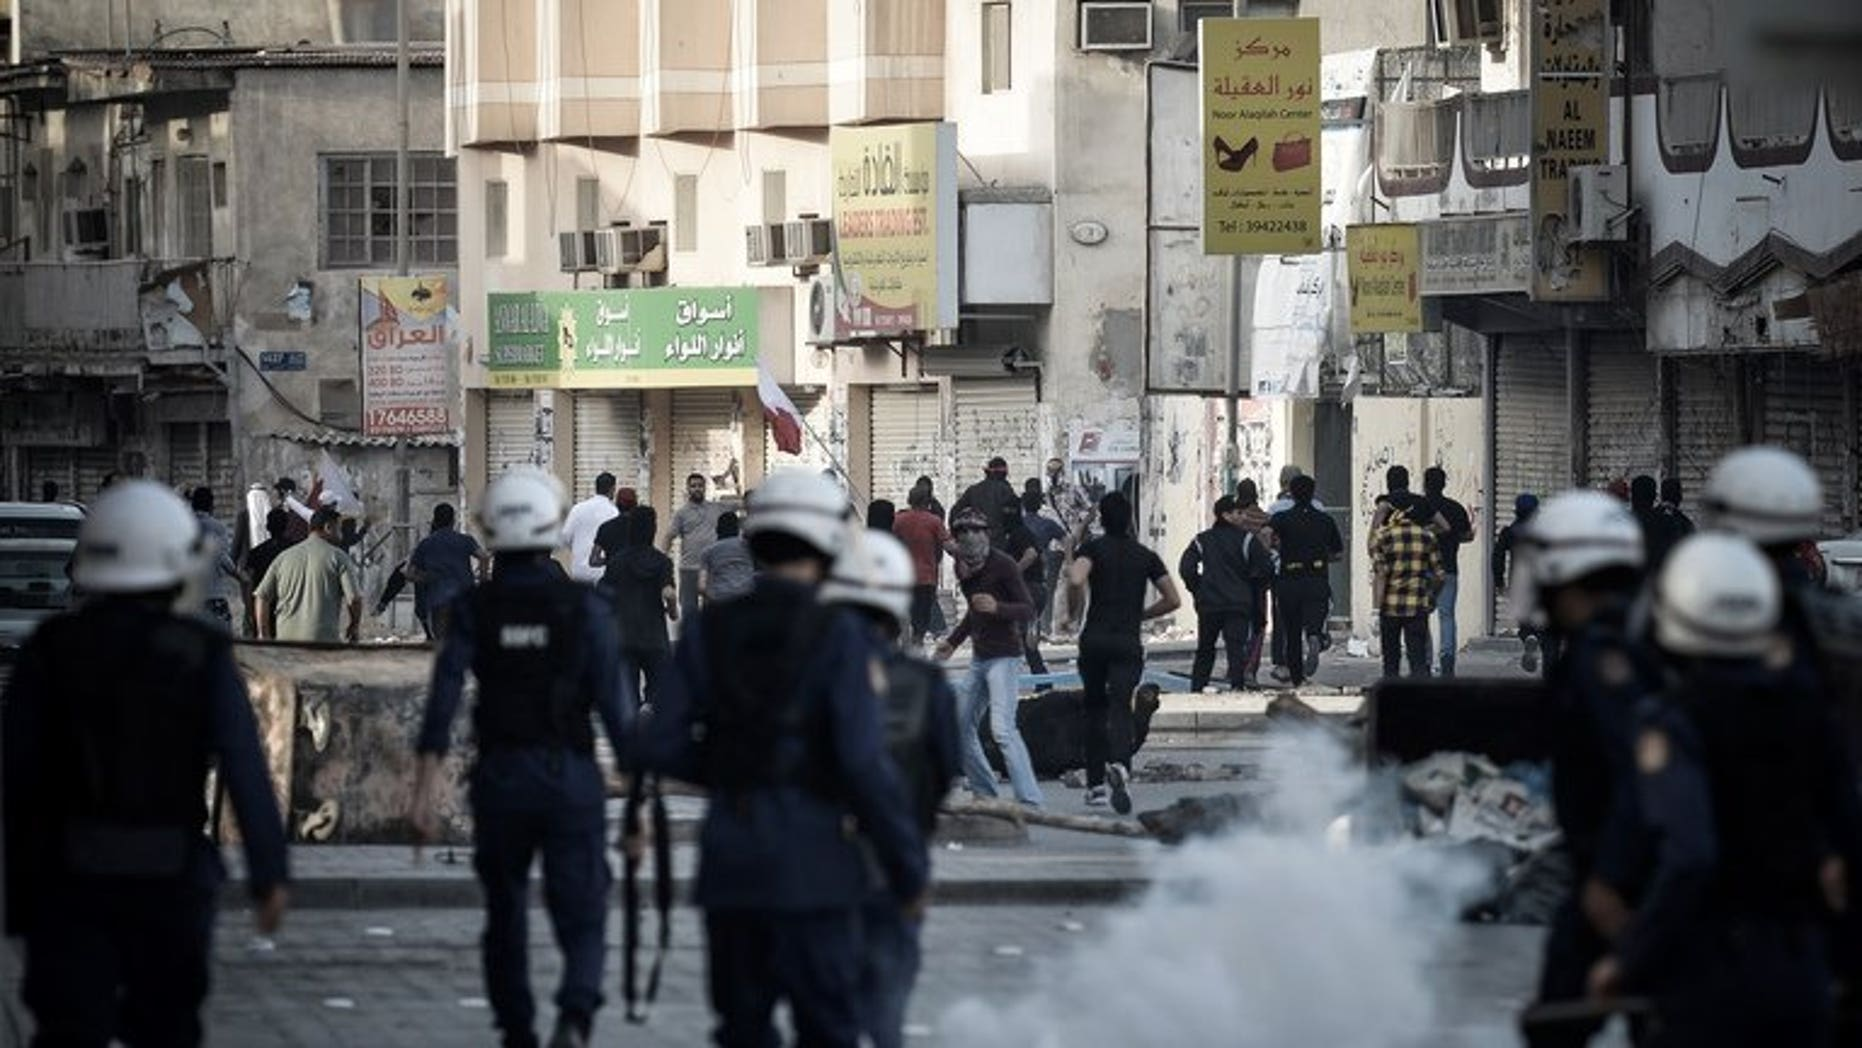 Bahraini riot police disperse protesters during a demonstration in Daih, on February 22, 2013. A home-made bomb has wounded four Bahraini policemen outside a Shiite village, the interior ministry said in the latest unrest to rock the Sunni-ruled Shiite-majority Gulf state.